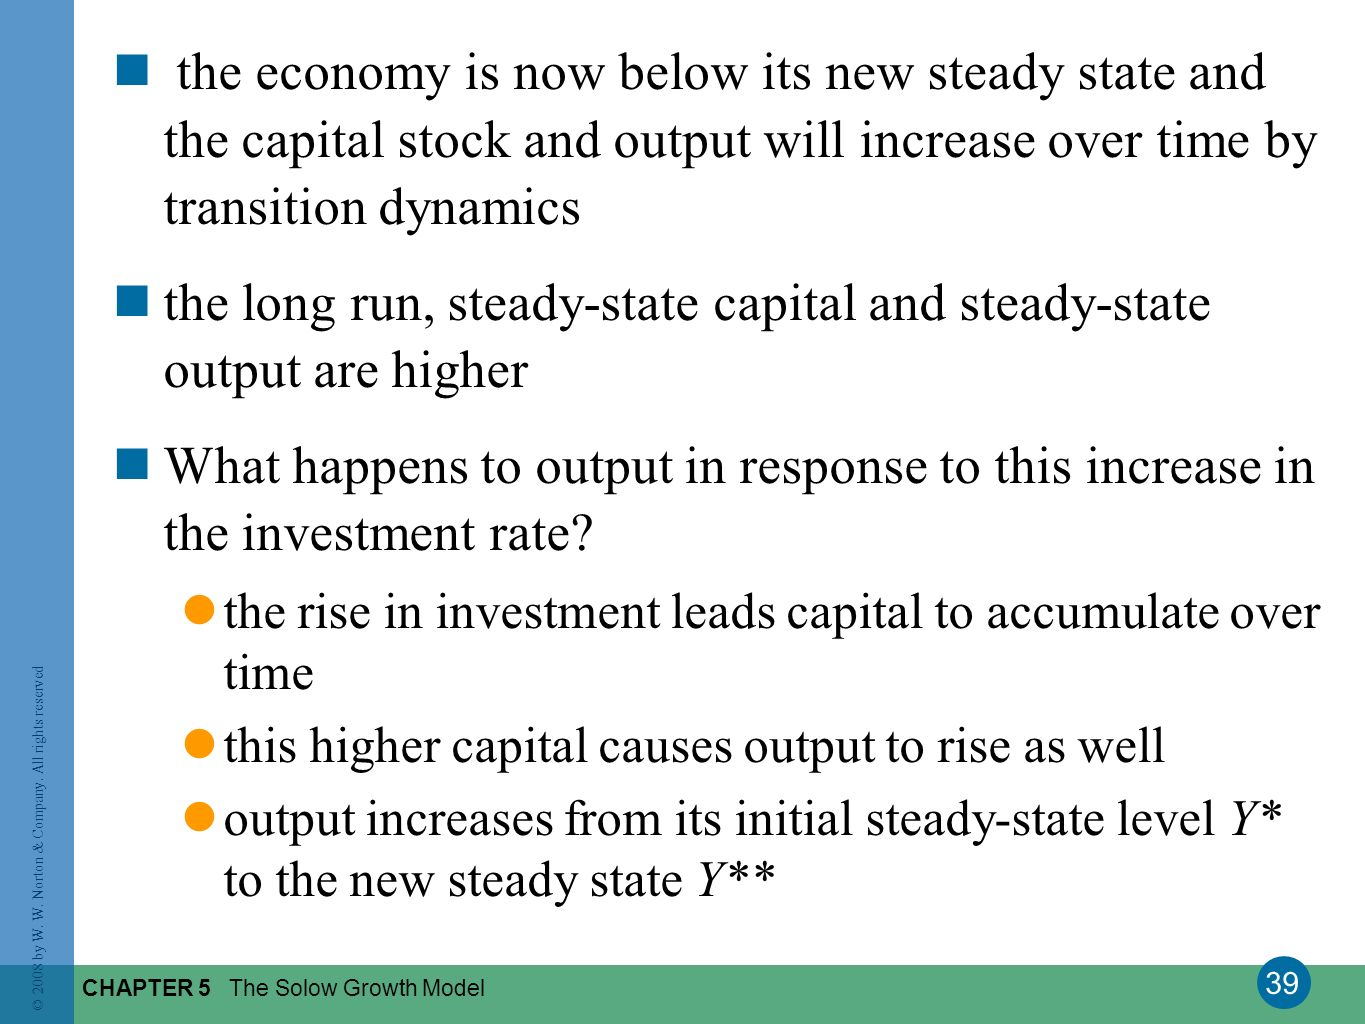 the long run, steady-state capital and steady-state output are higher